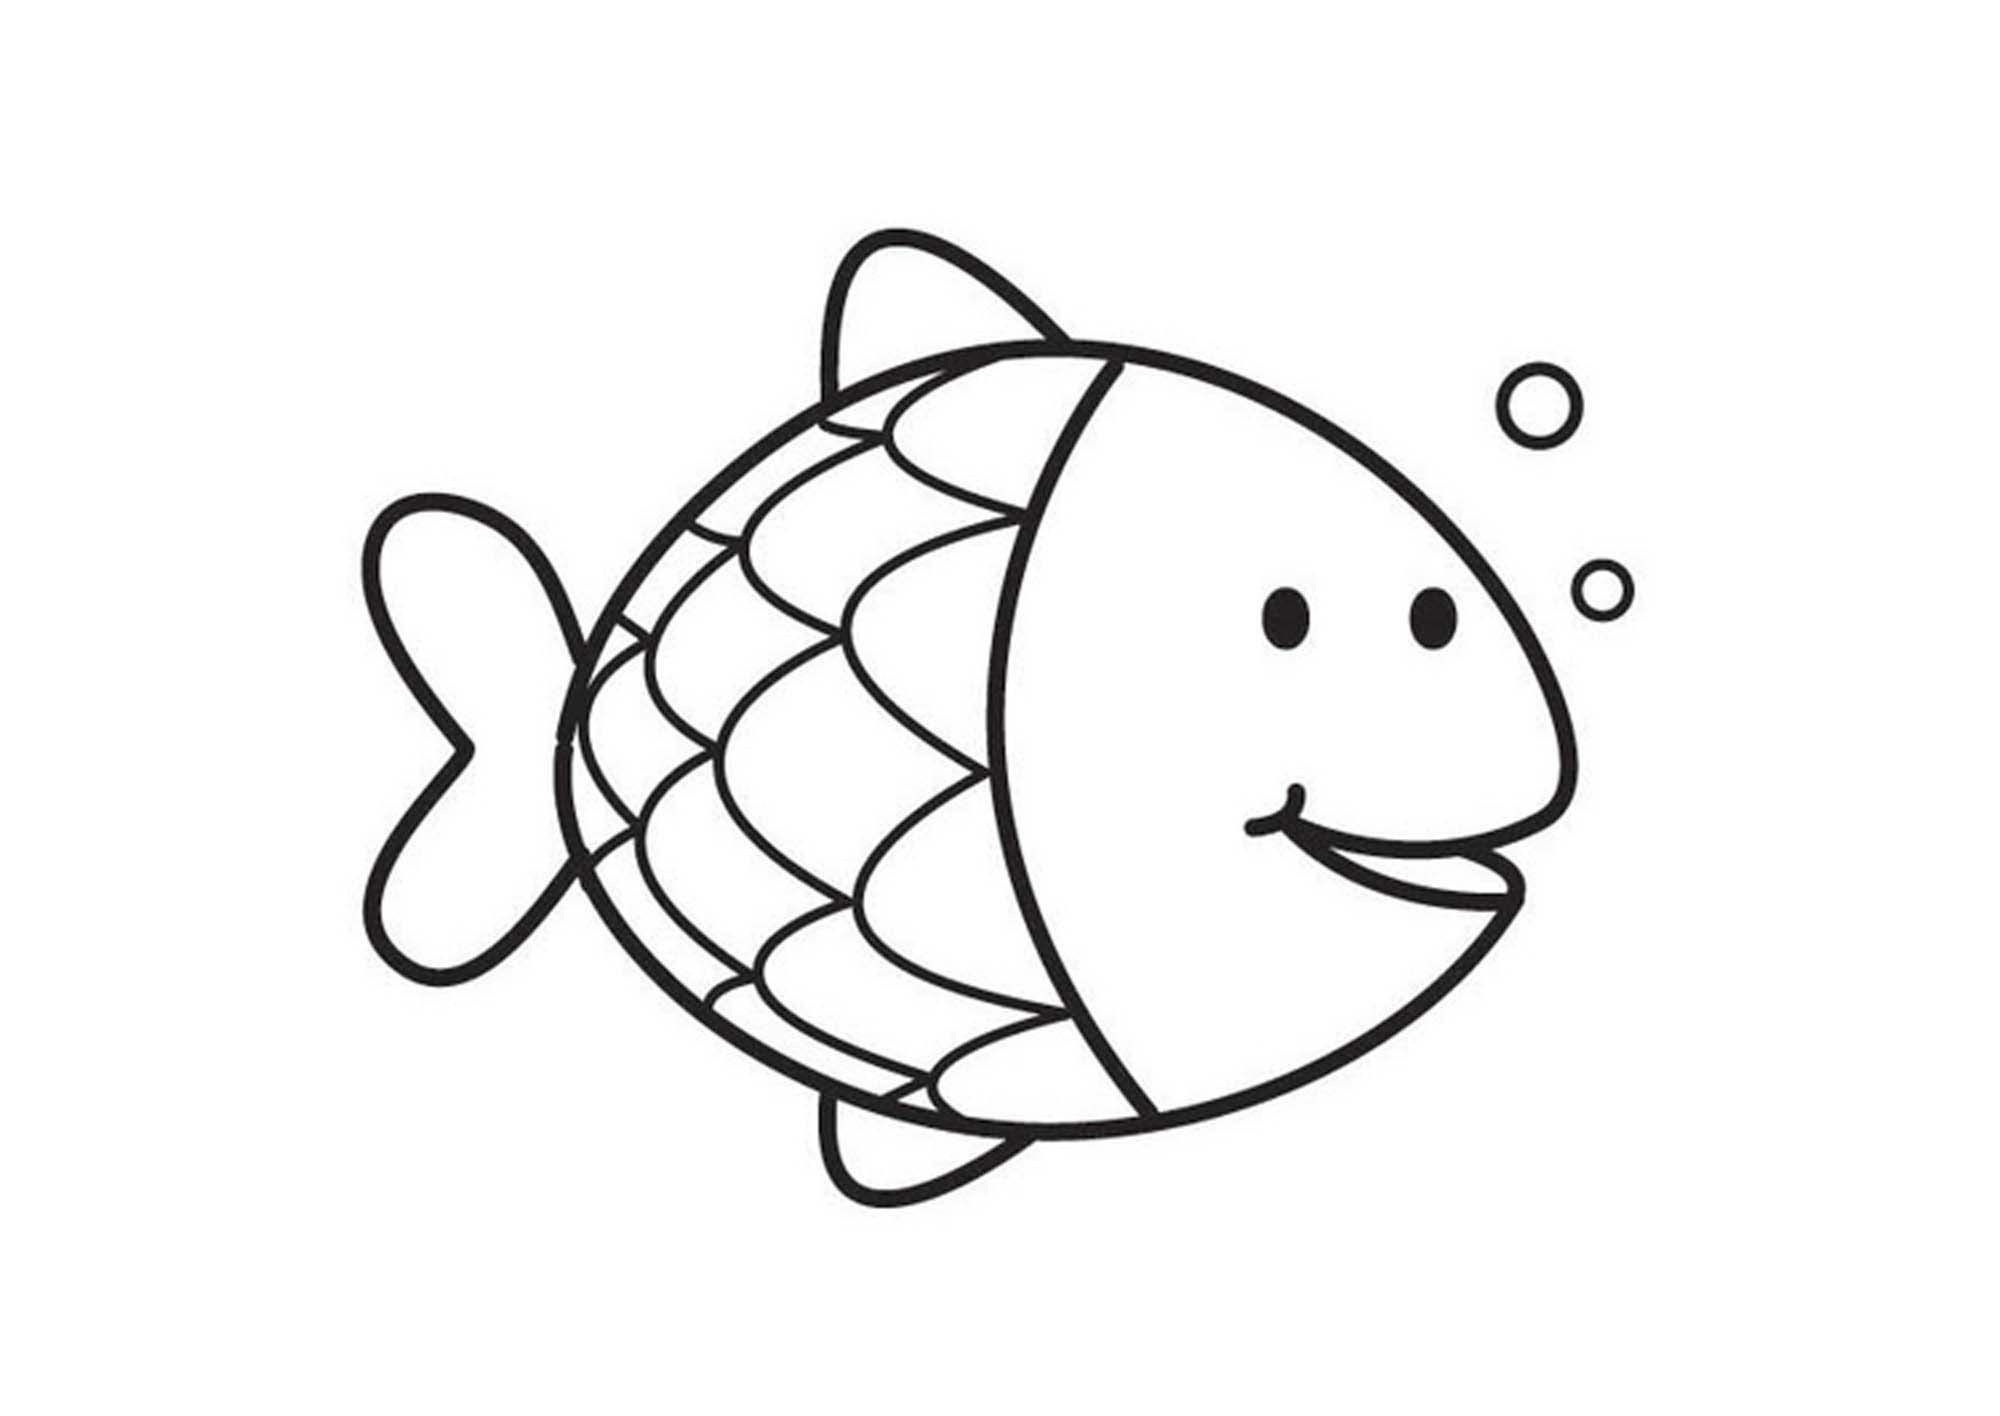 - Cute Fish Coloring Pages For Kids From The Finding Nemo Movie